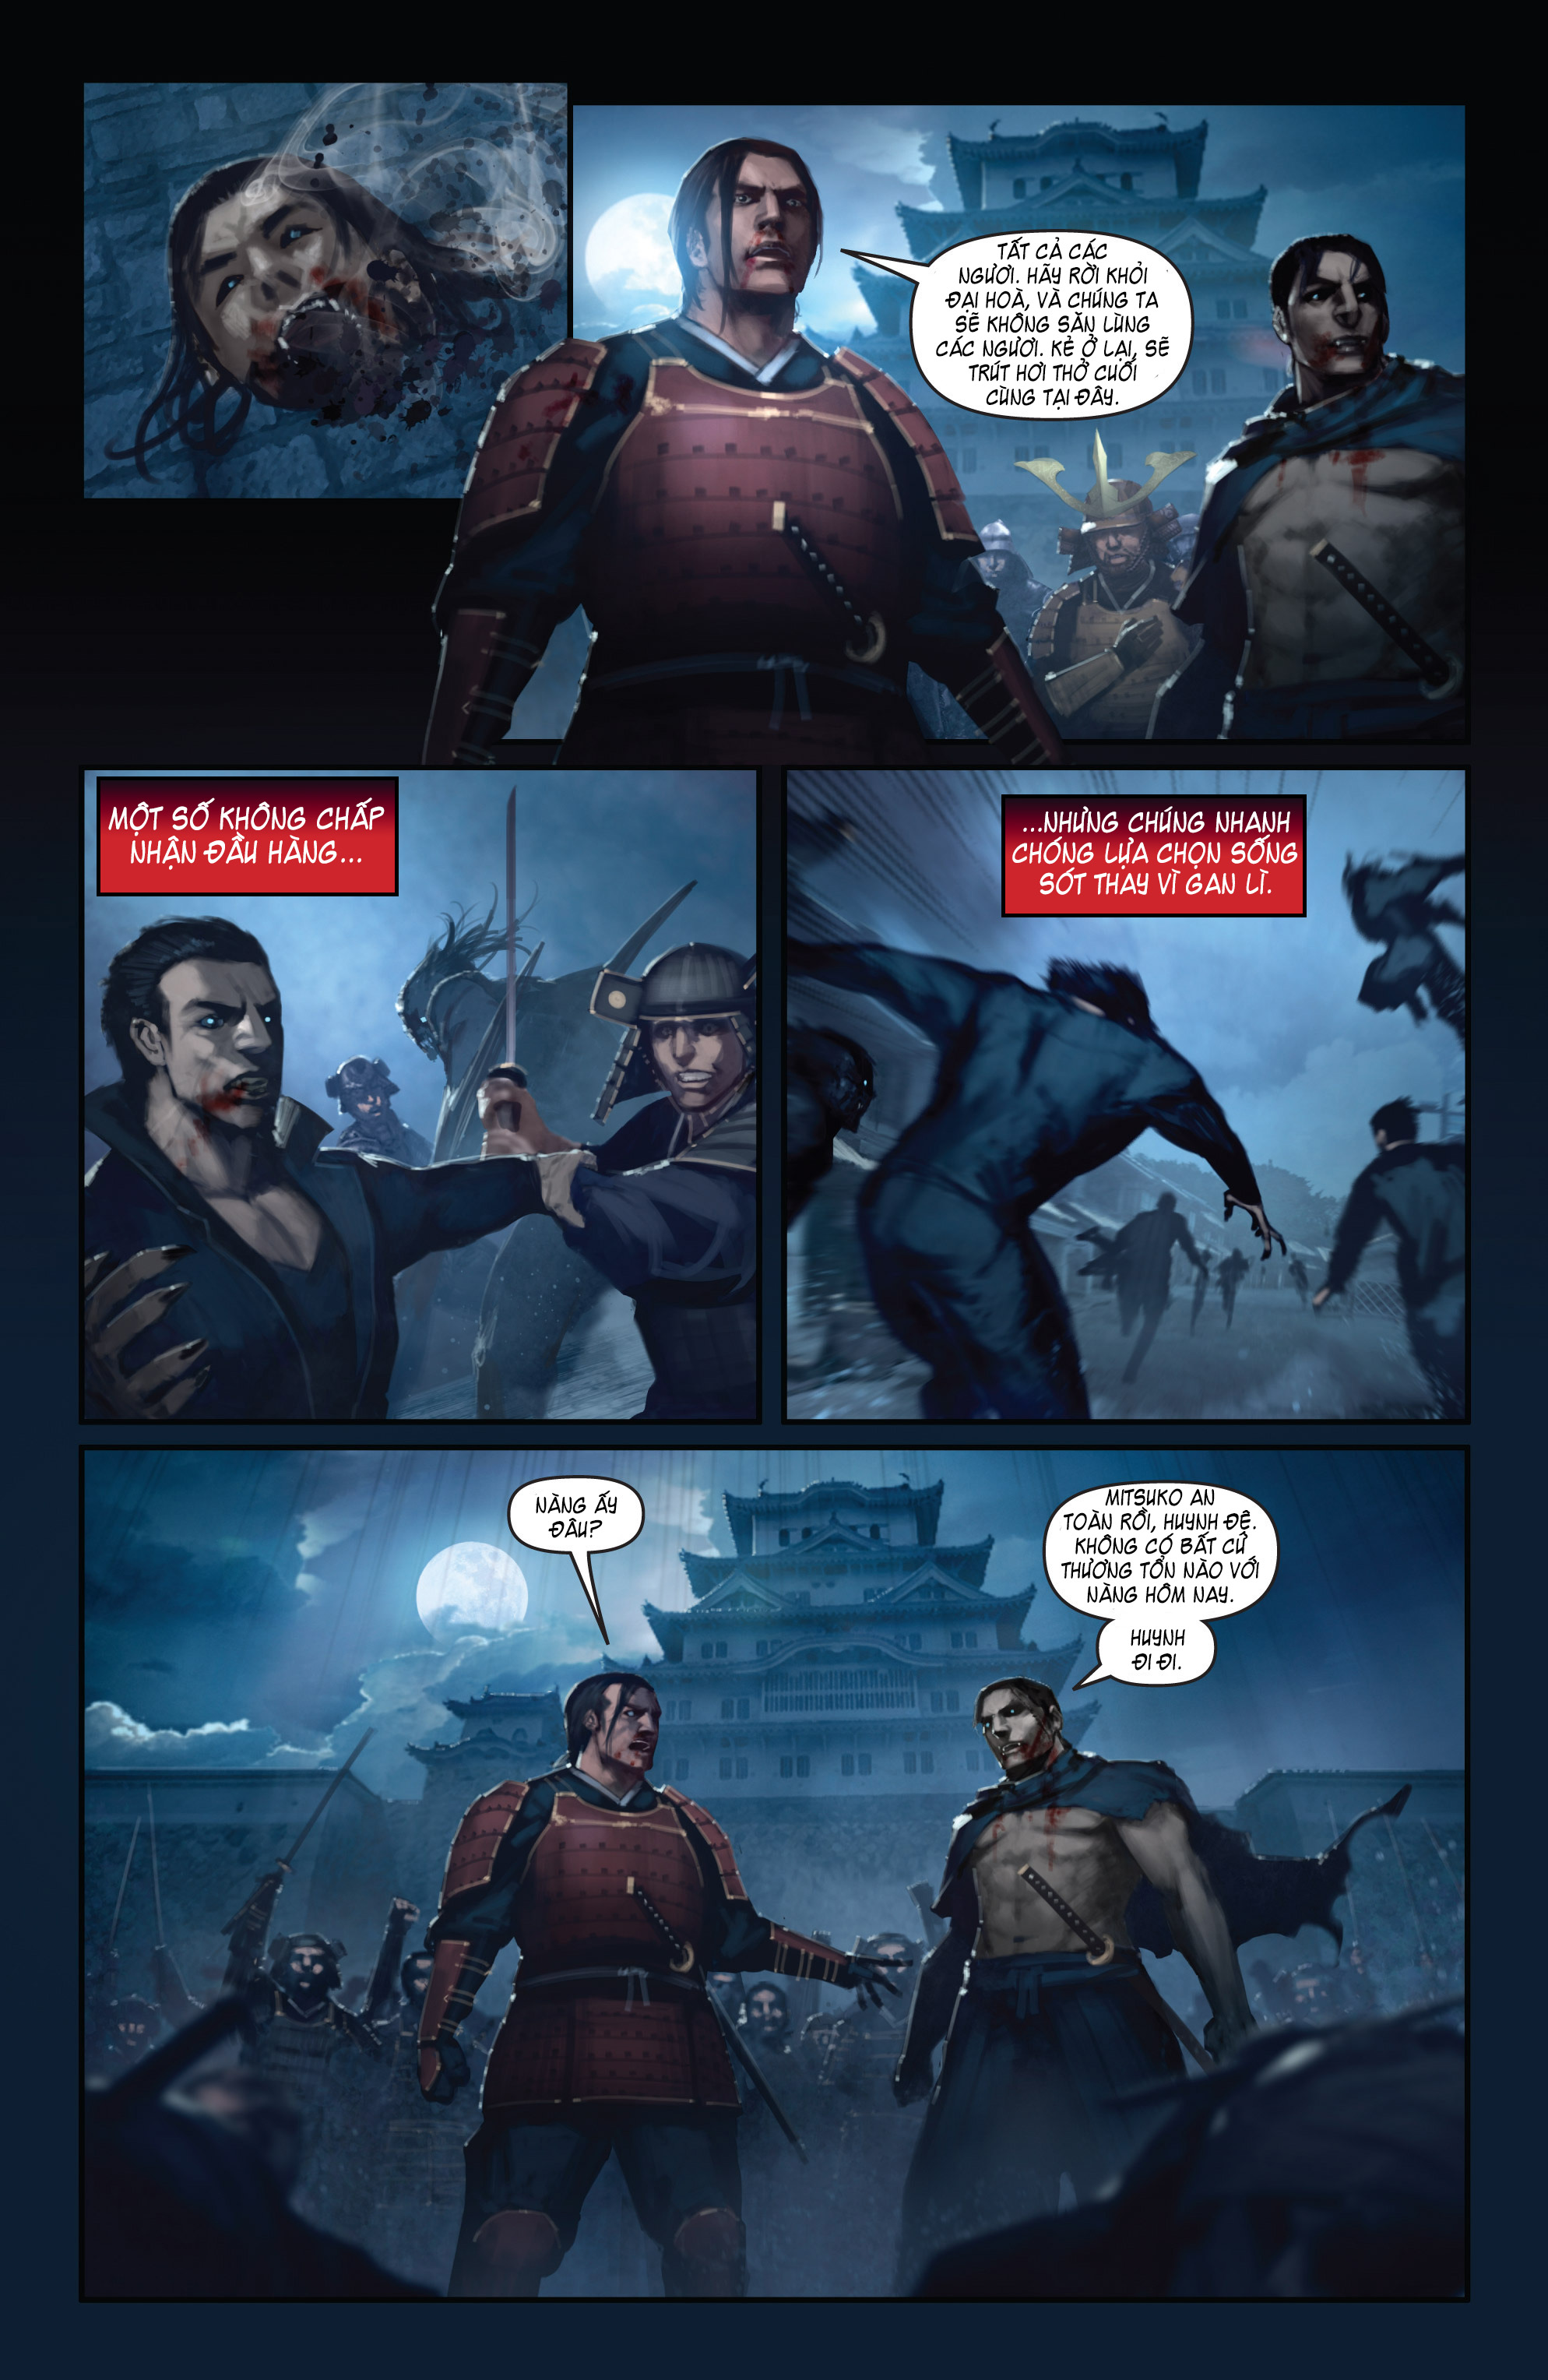 BUSHIDO - THE WAY OF THE WARRIOR chapter 5 - end trang 21